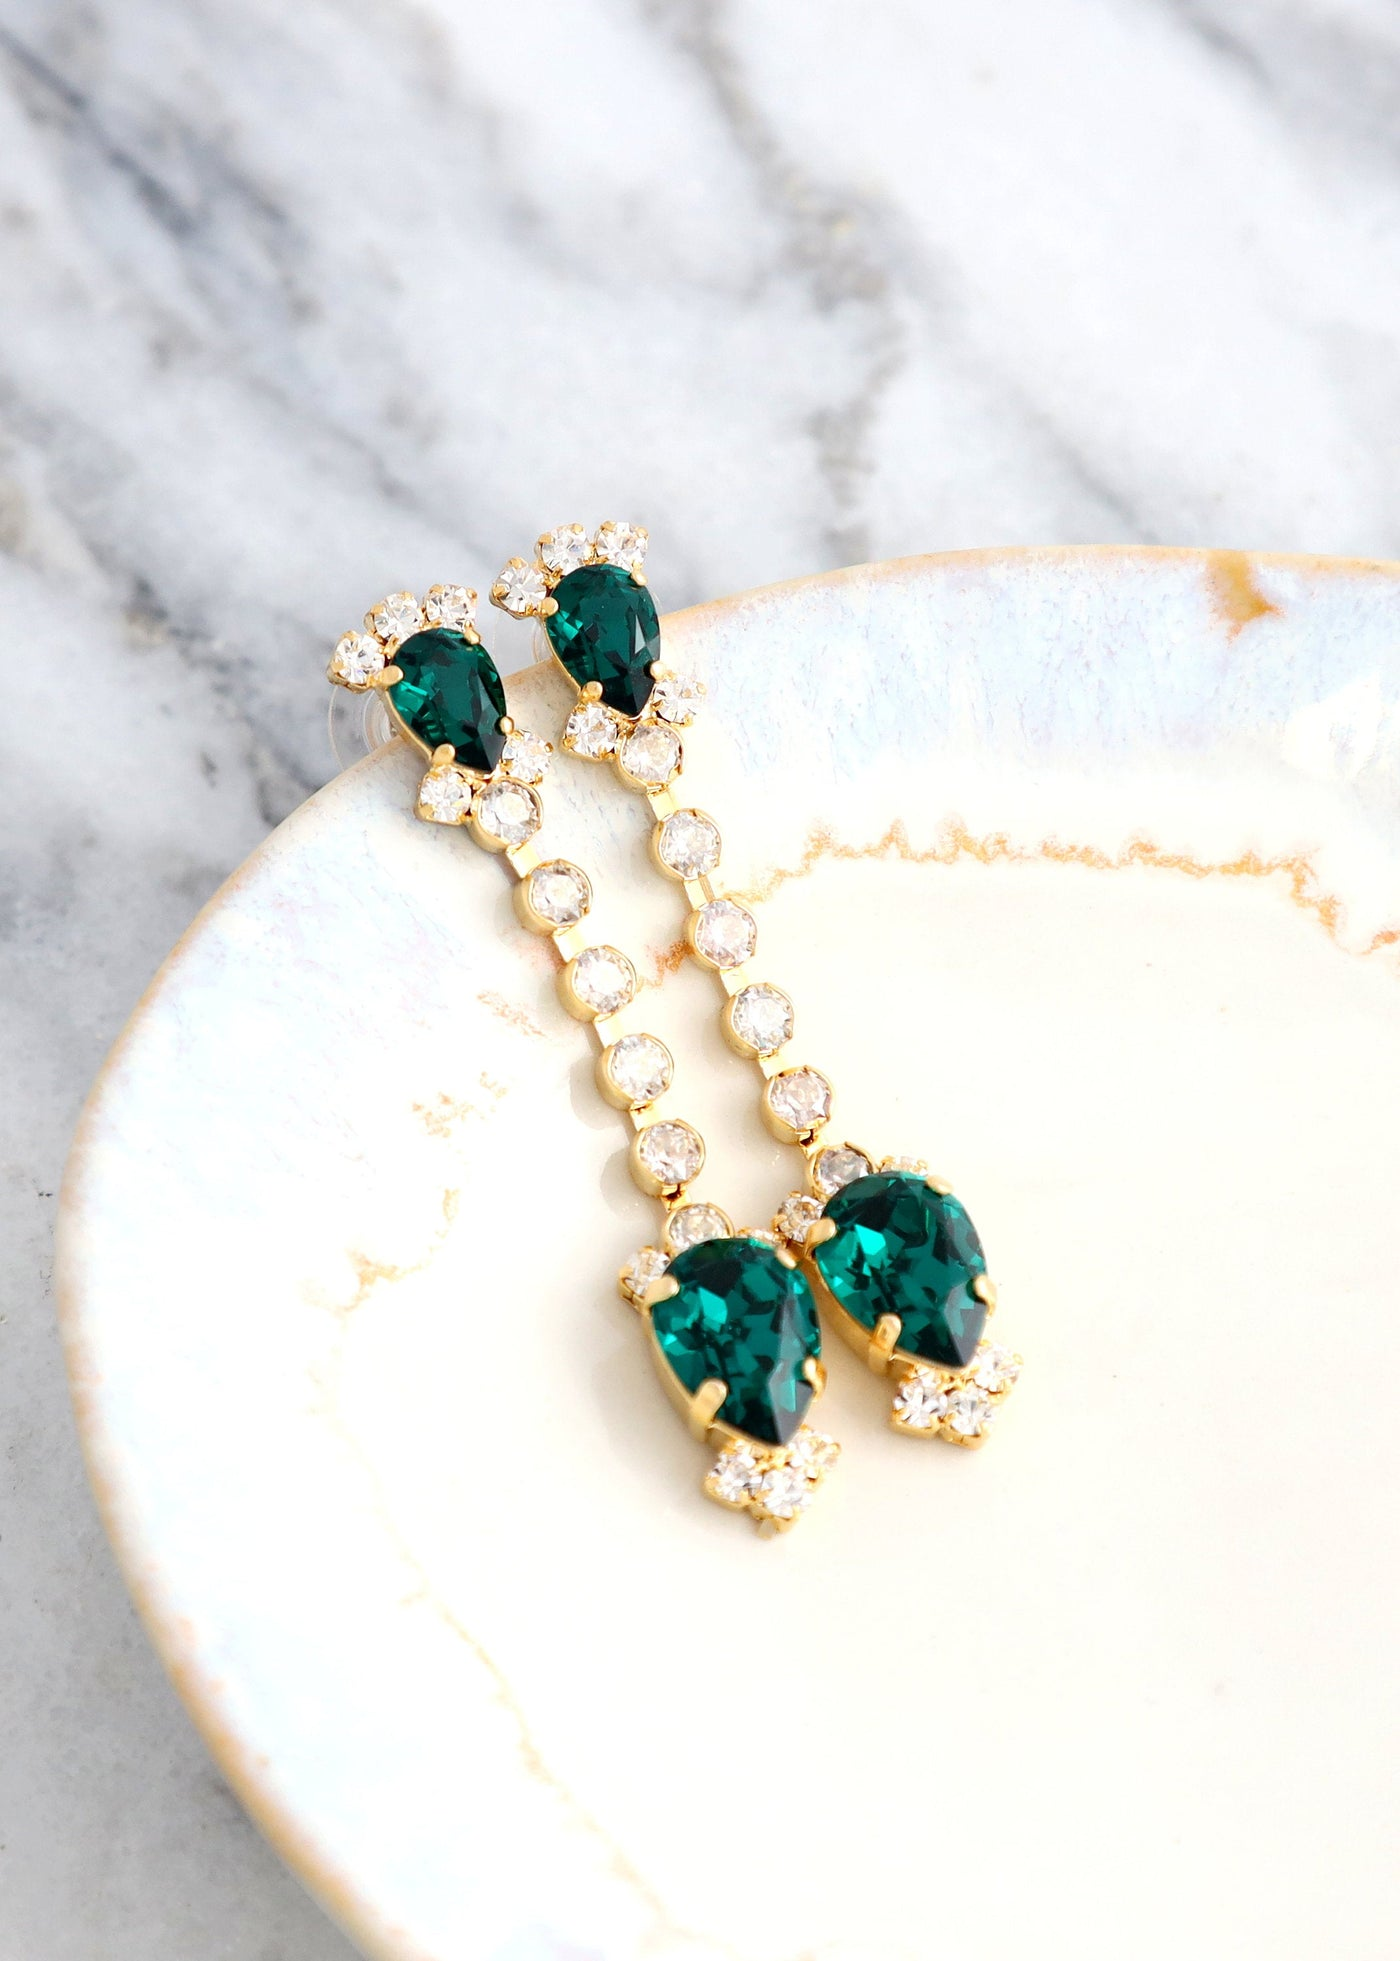 EMERALD LONG  Earrings, Emerald Bridal Drop Earrings, Bridal Green Earrings, Swarovski Emerald Chandelier Earrings, Emerald Green Earrings